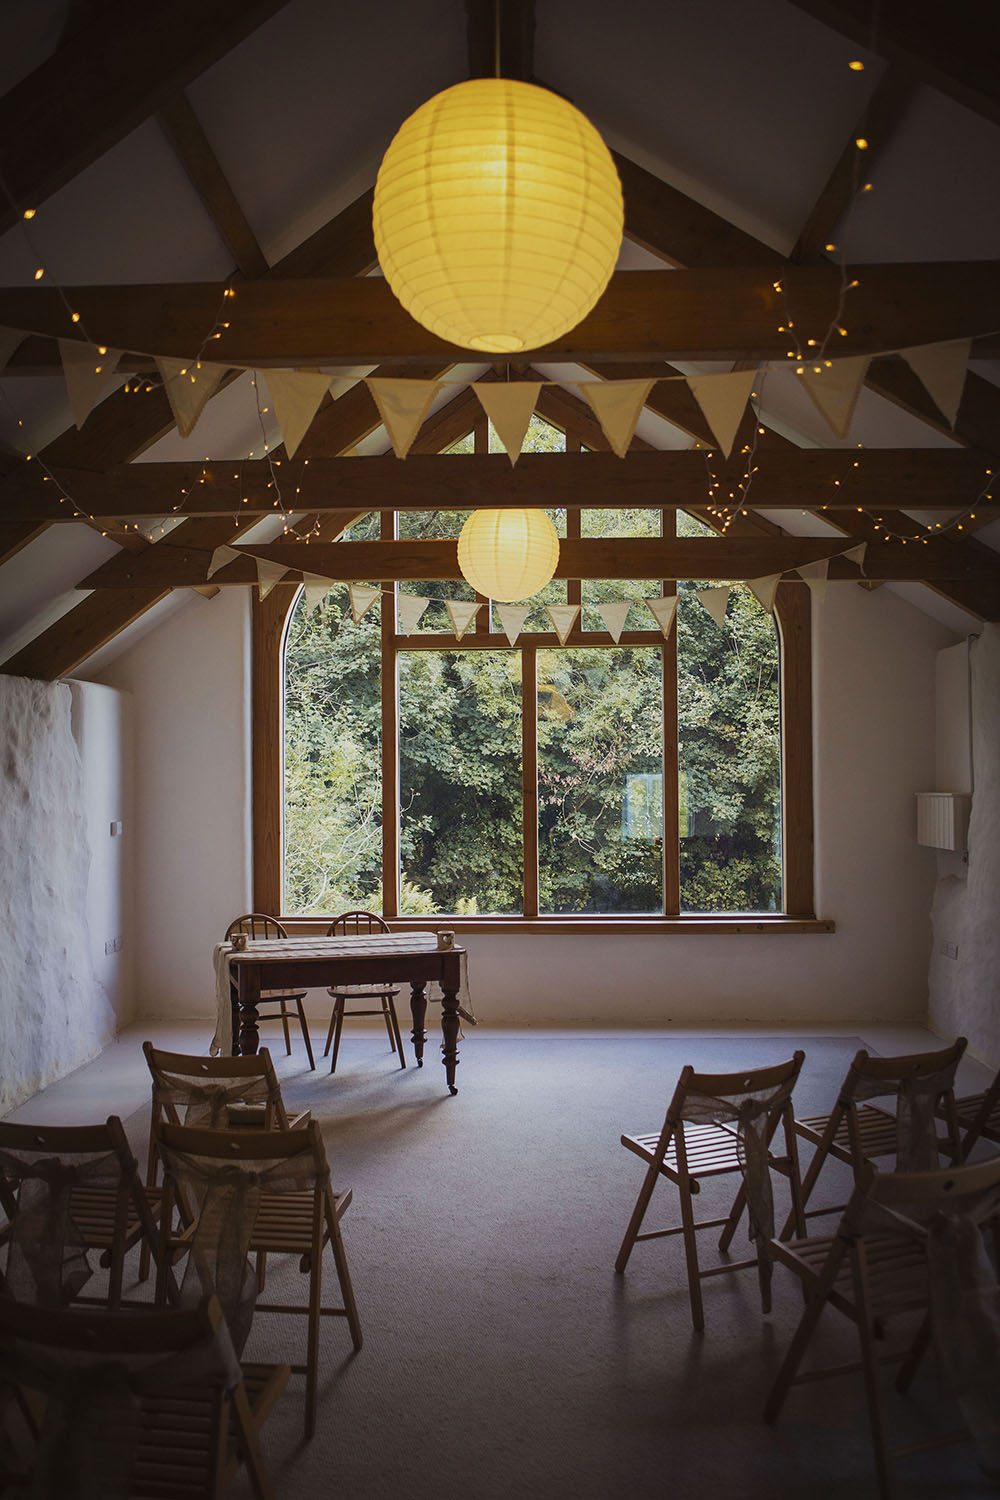 nantwen wedding venue ceremony room